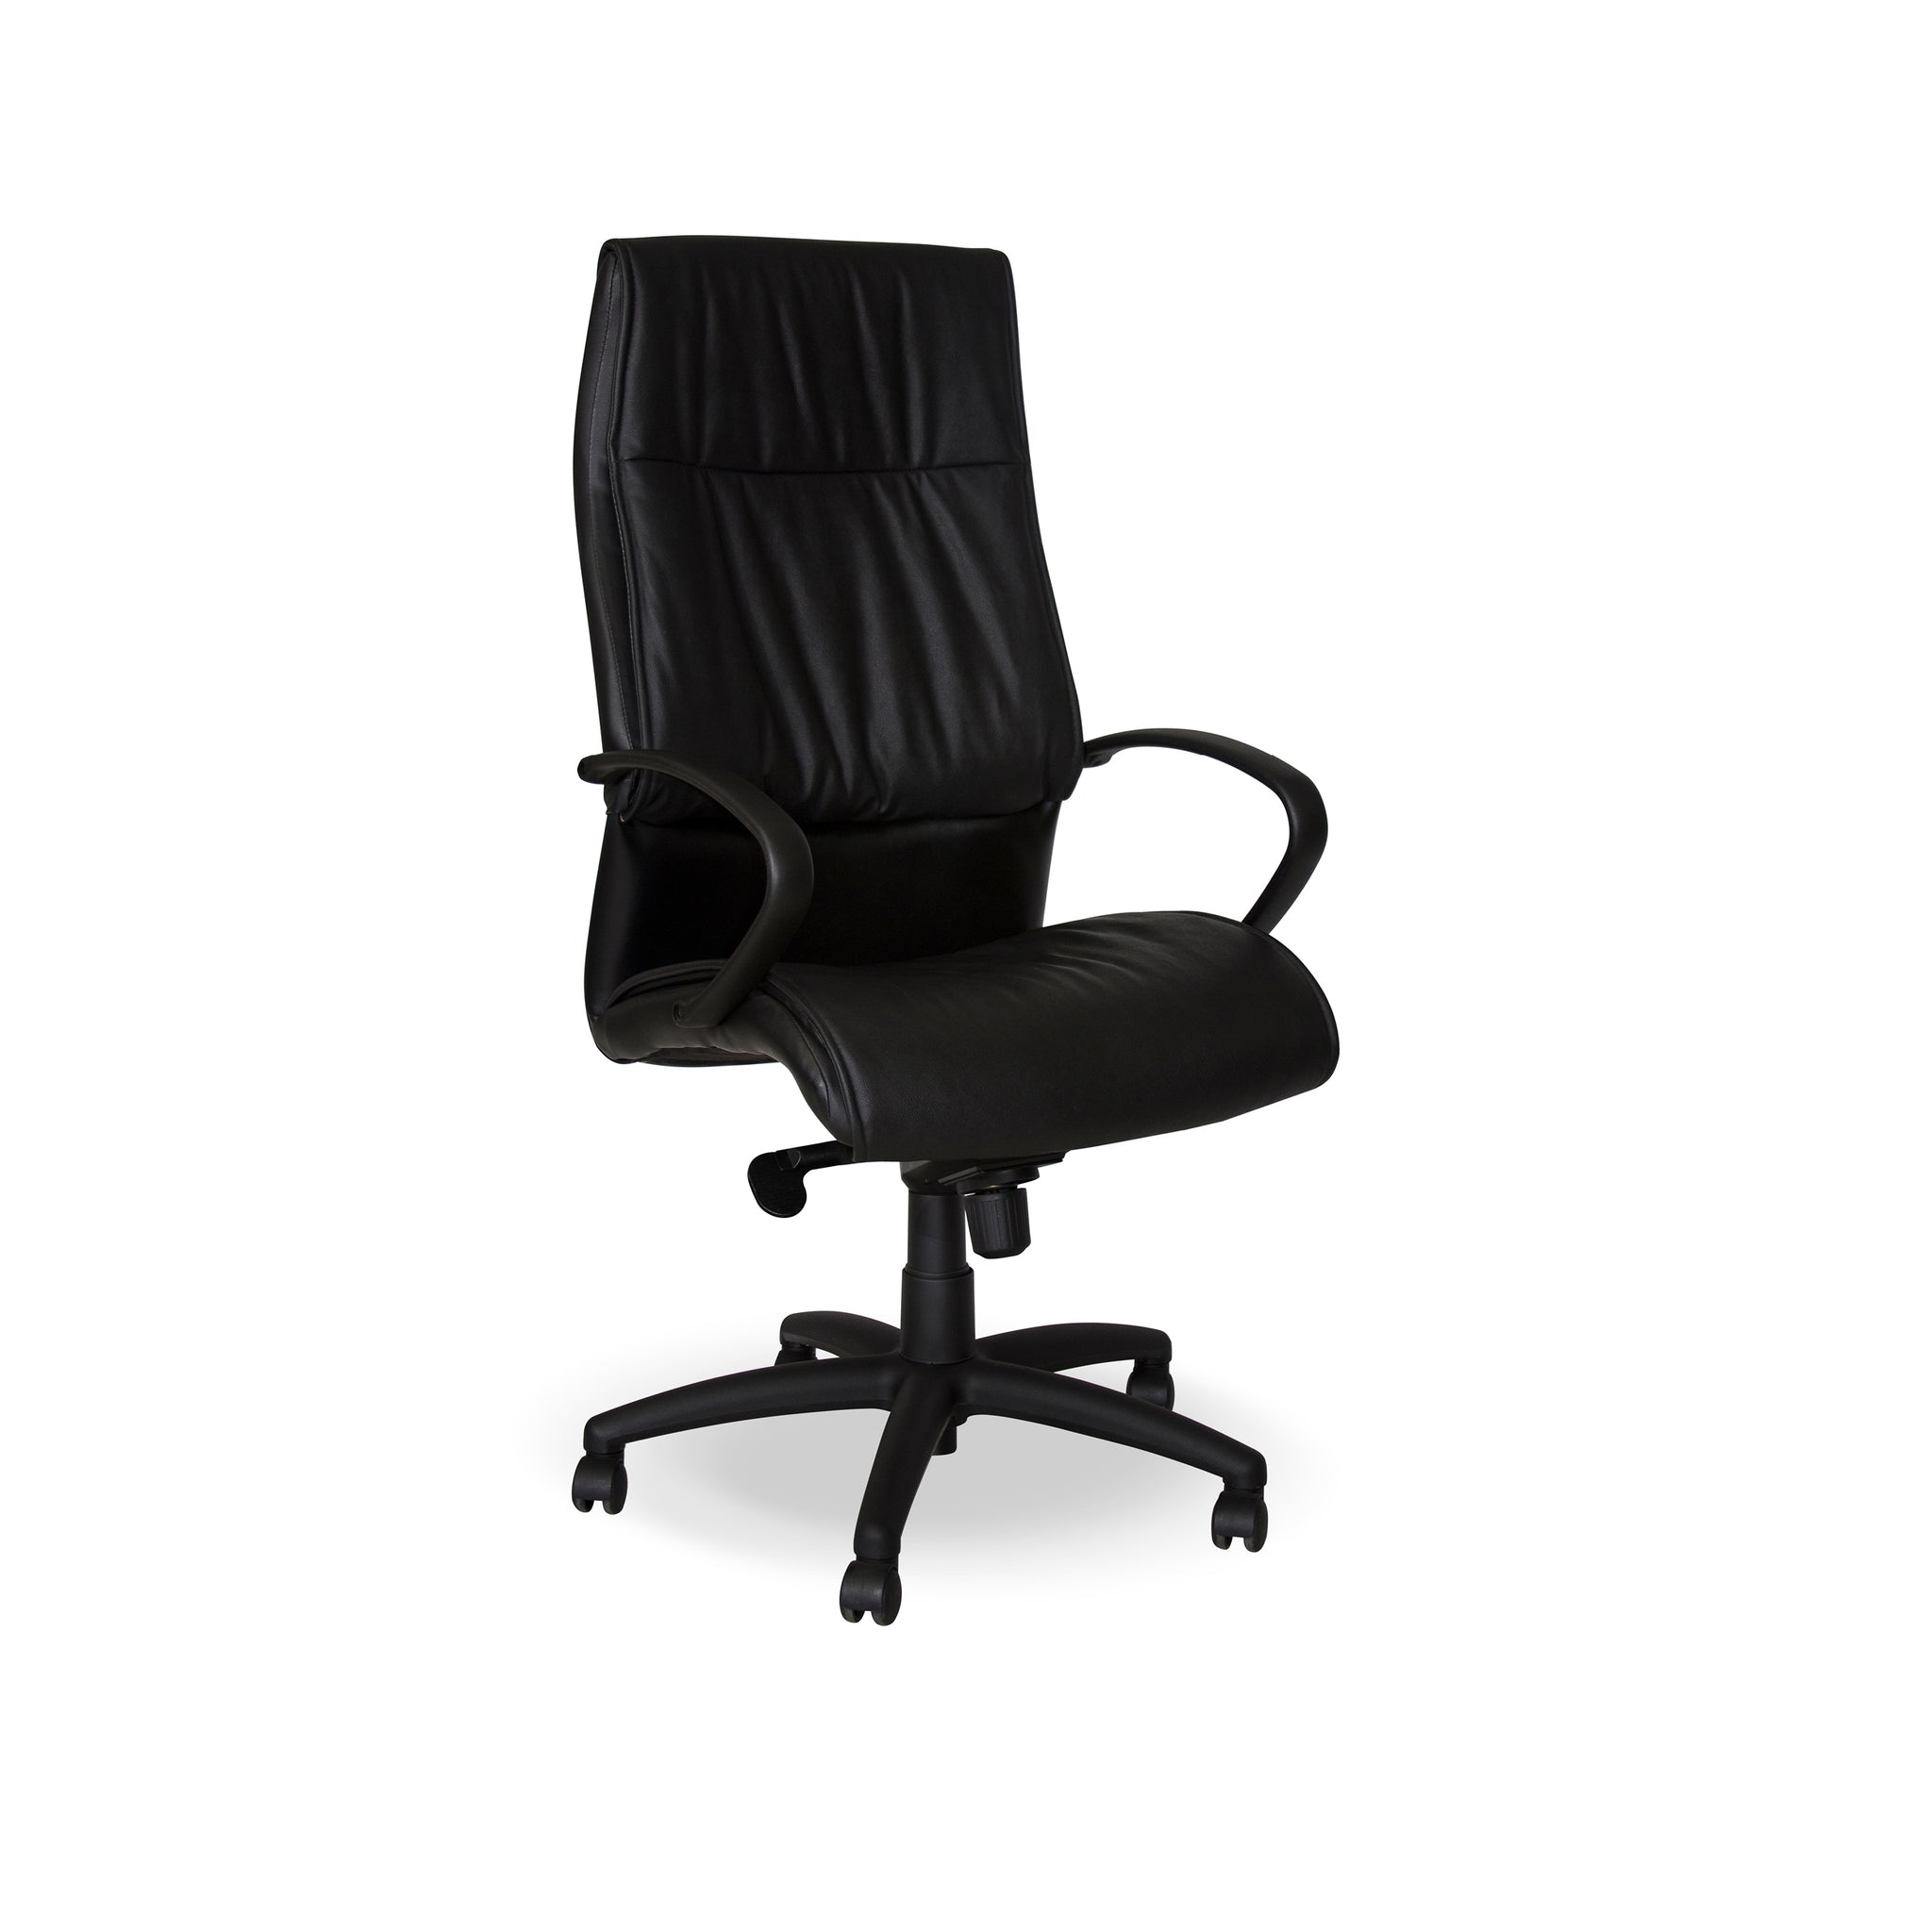 Hedcor Mirage high back office chair